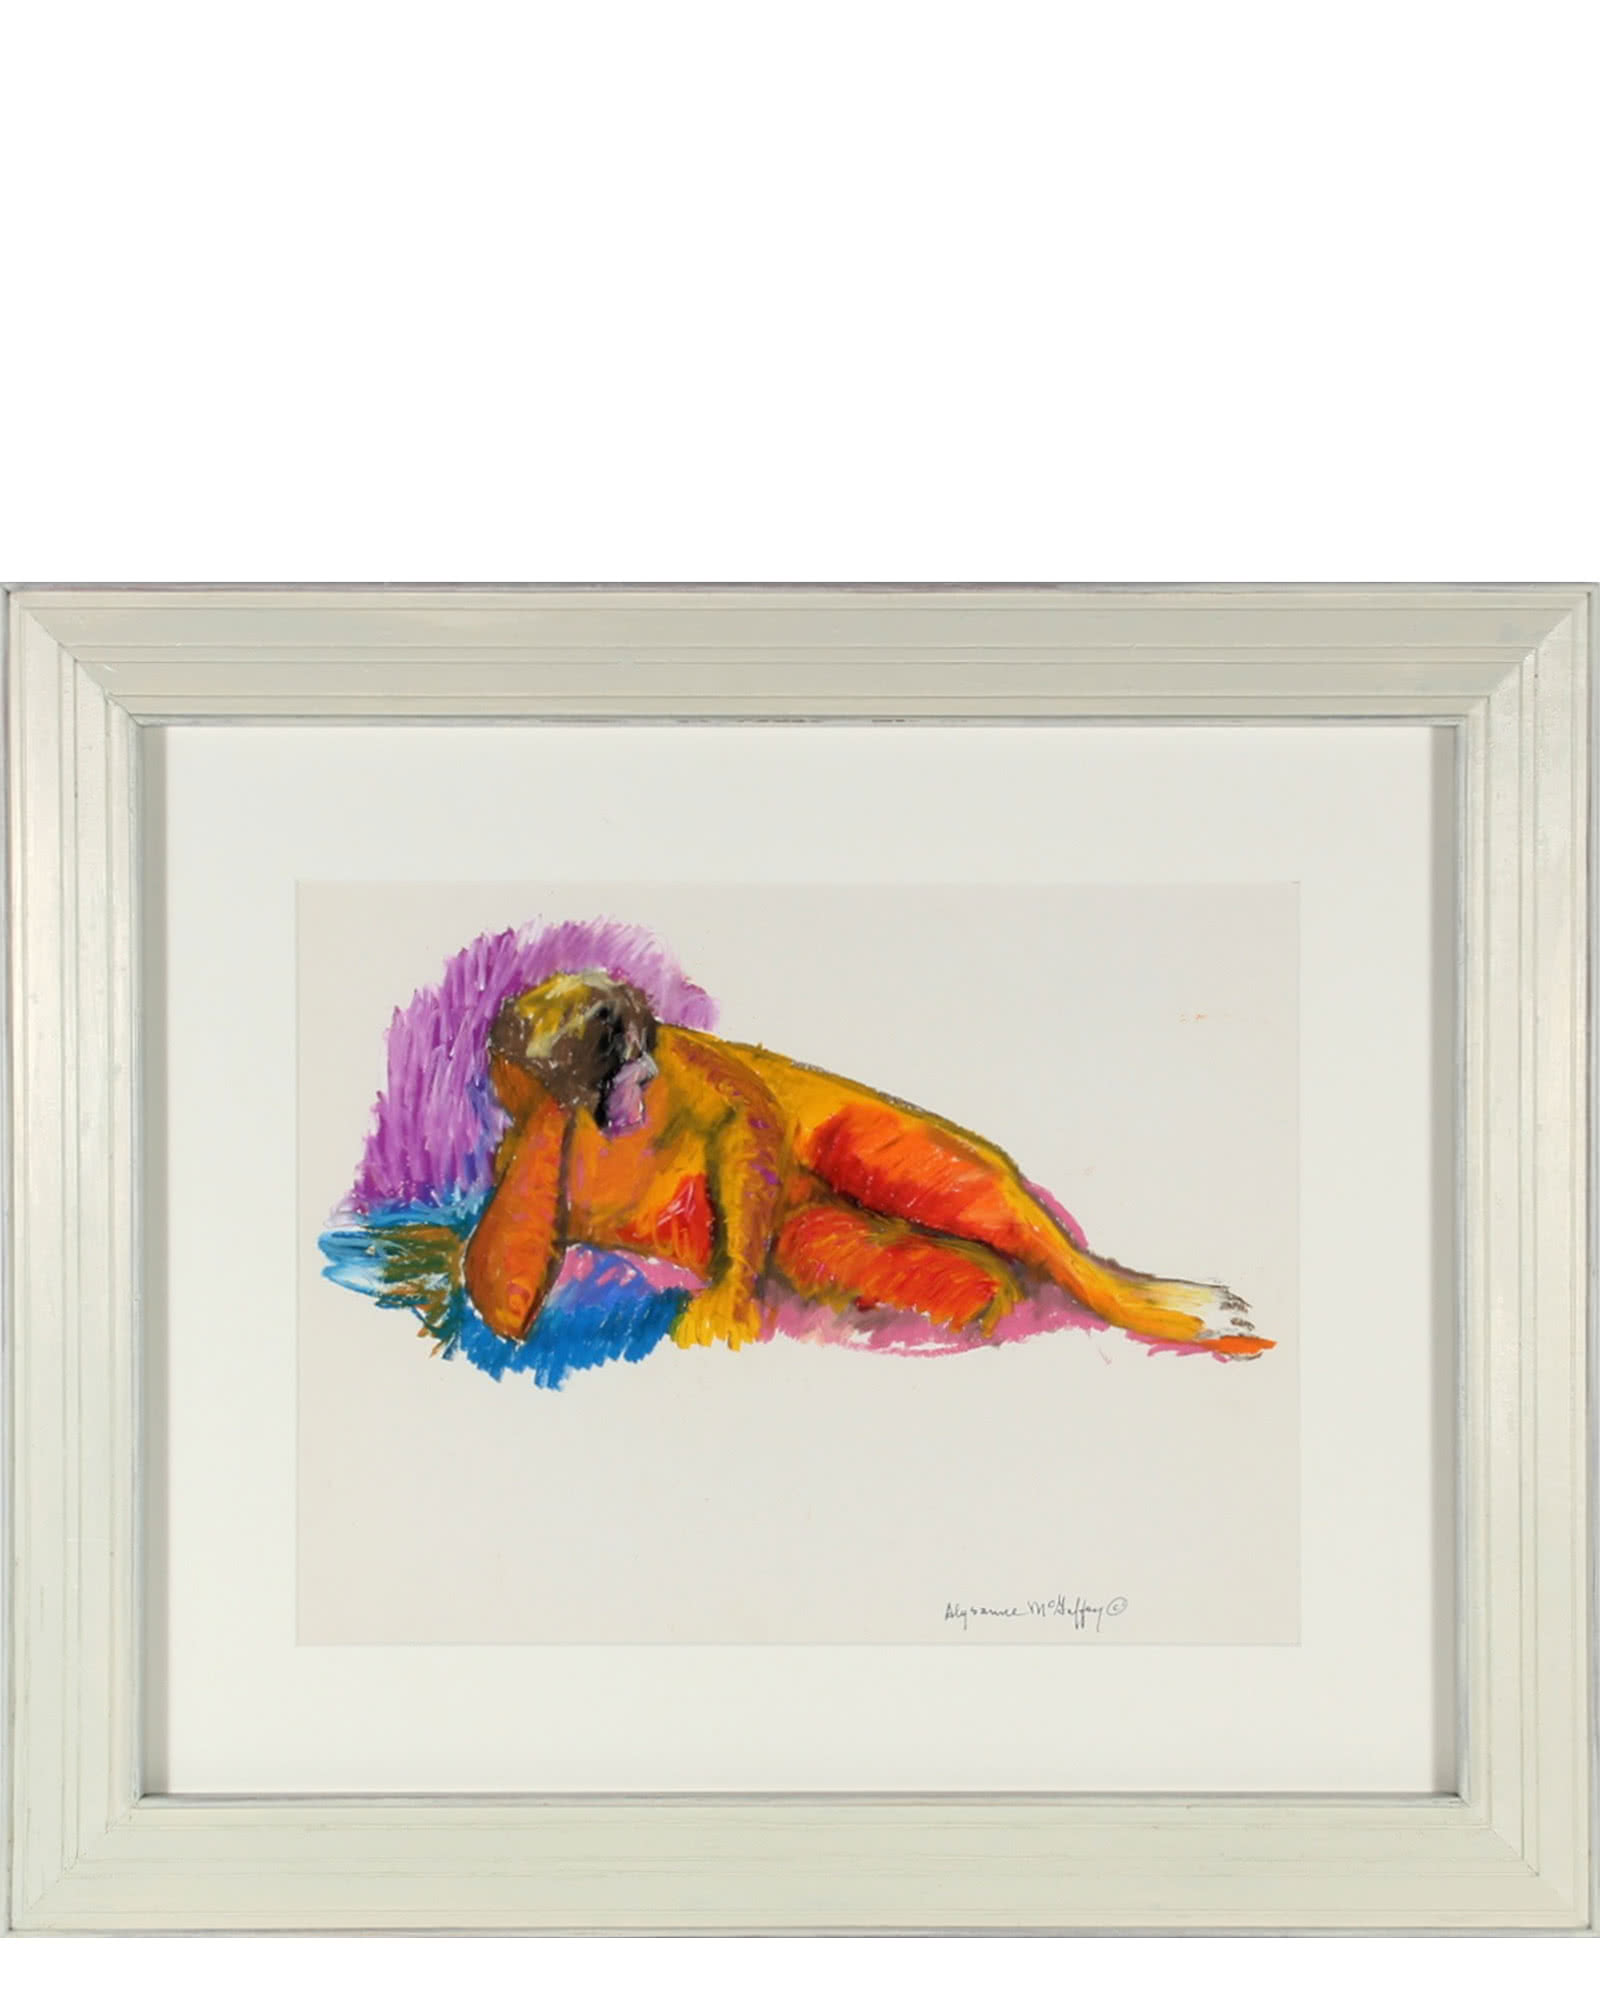 Colorful Nude by Alysanne McGaffey